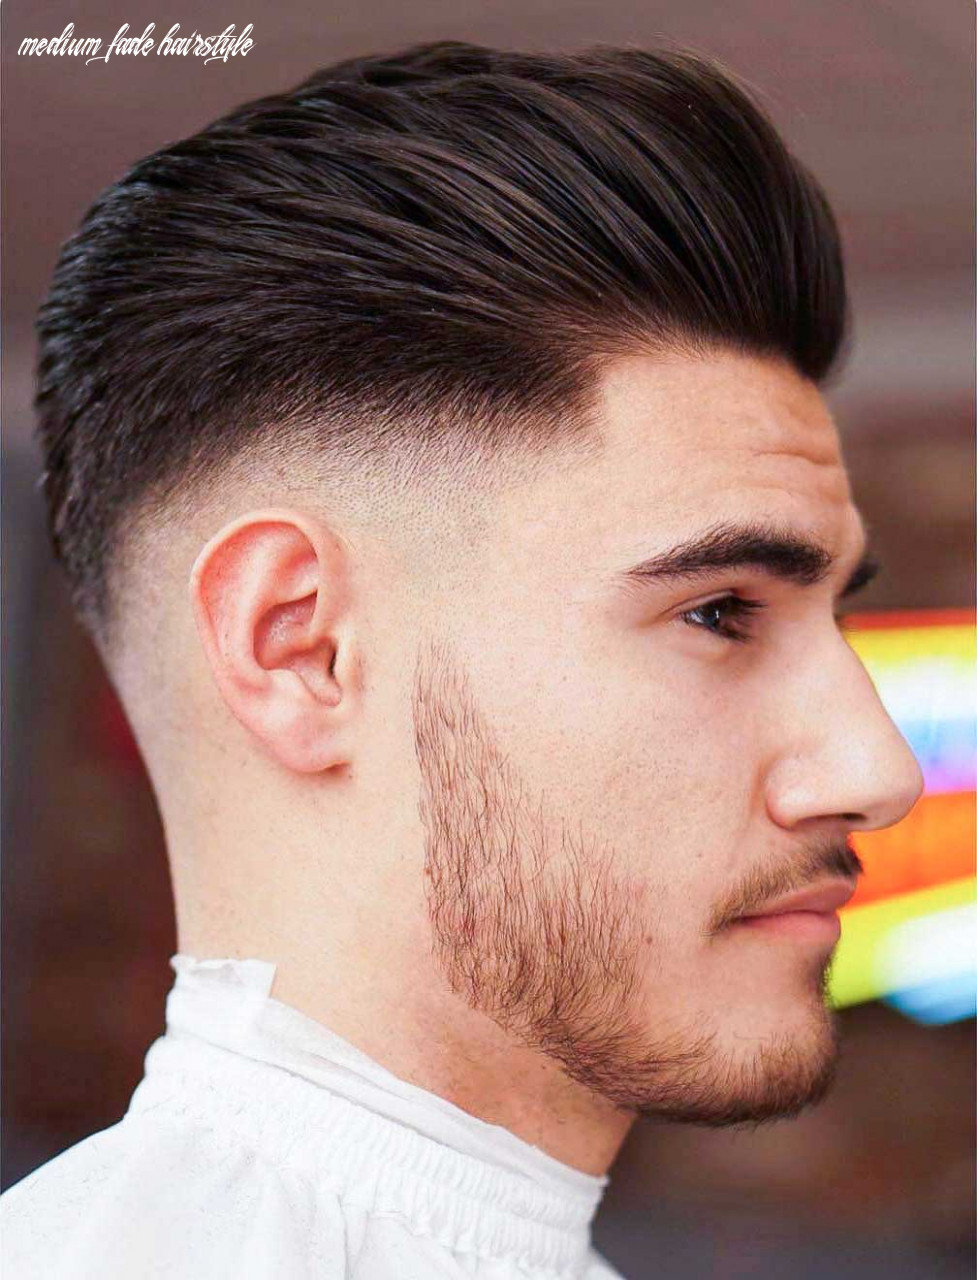 10 skin fade haircut ideas (trendsetter for 10) medium fade hairstyle